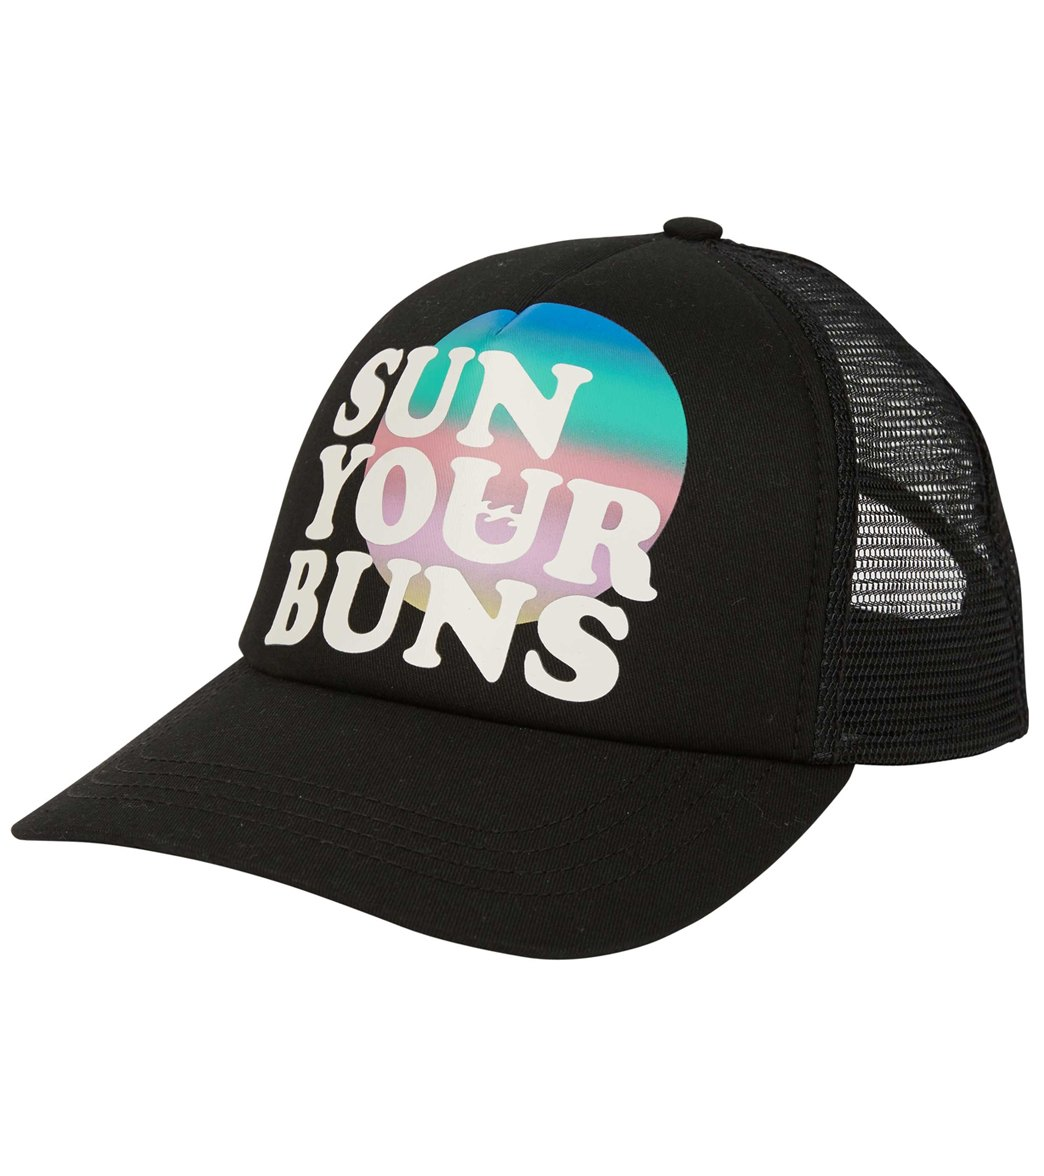 Billabong Women s Sun Your Bunz Trucker Hat at SwimOutlet.com b080cb7020d